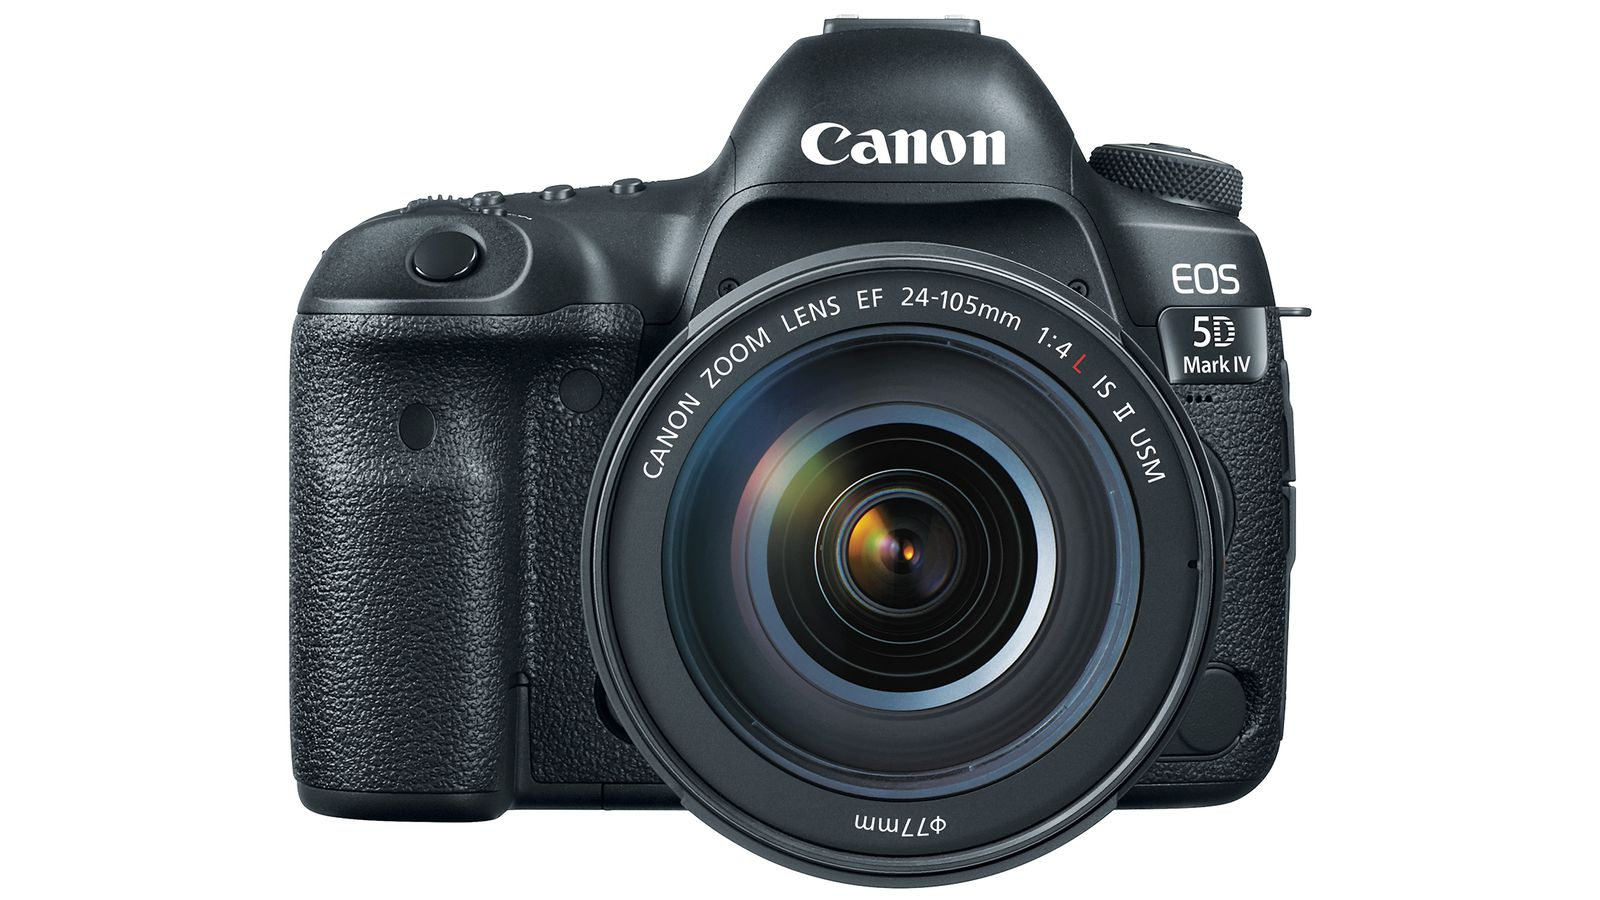 canon s 5d mark iv has built in wi fi and shoots 4k video. Black Bedroom Furniture Sets. Home Design Ideas